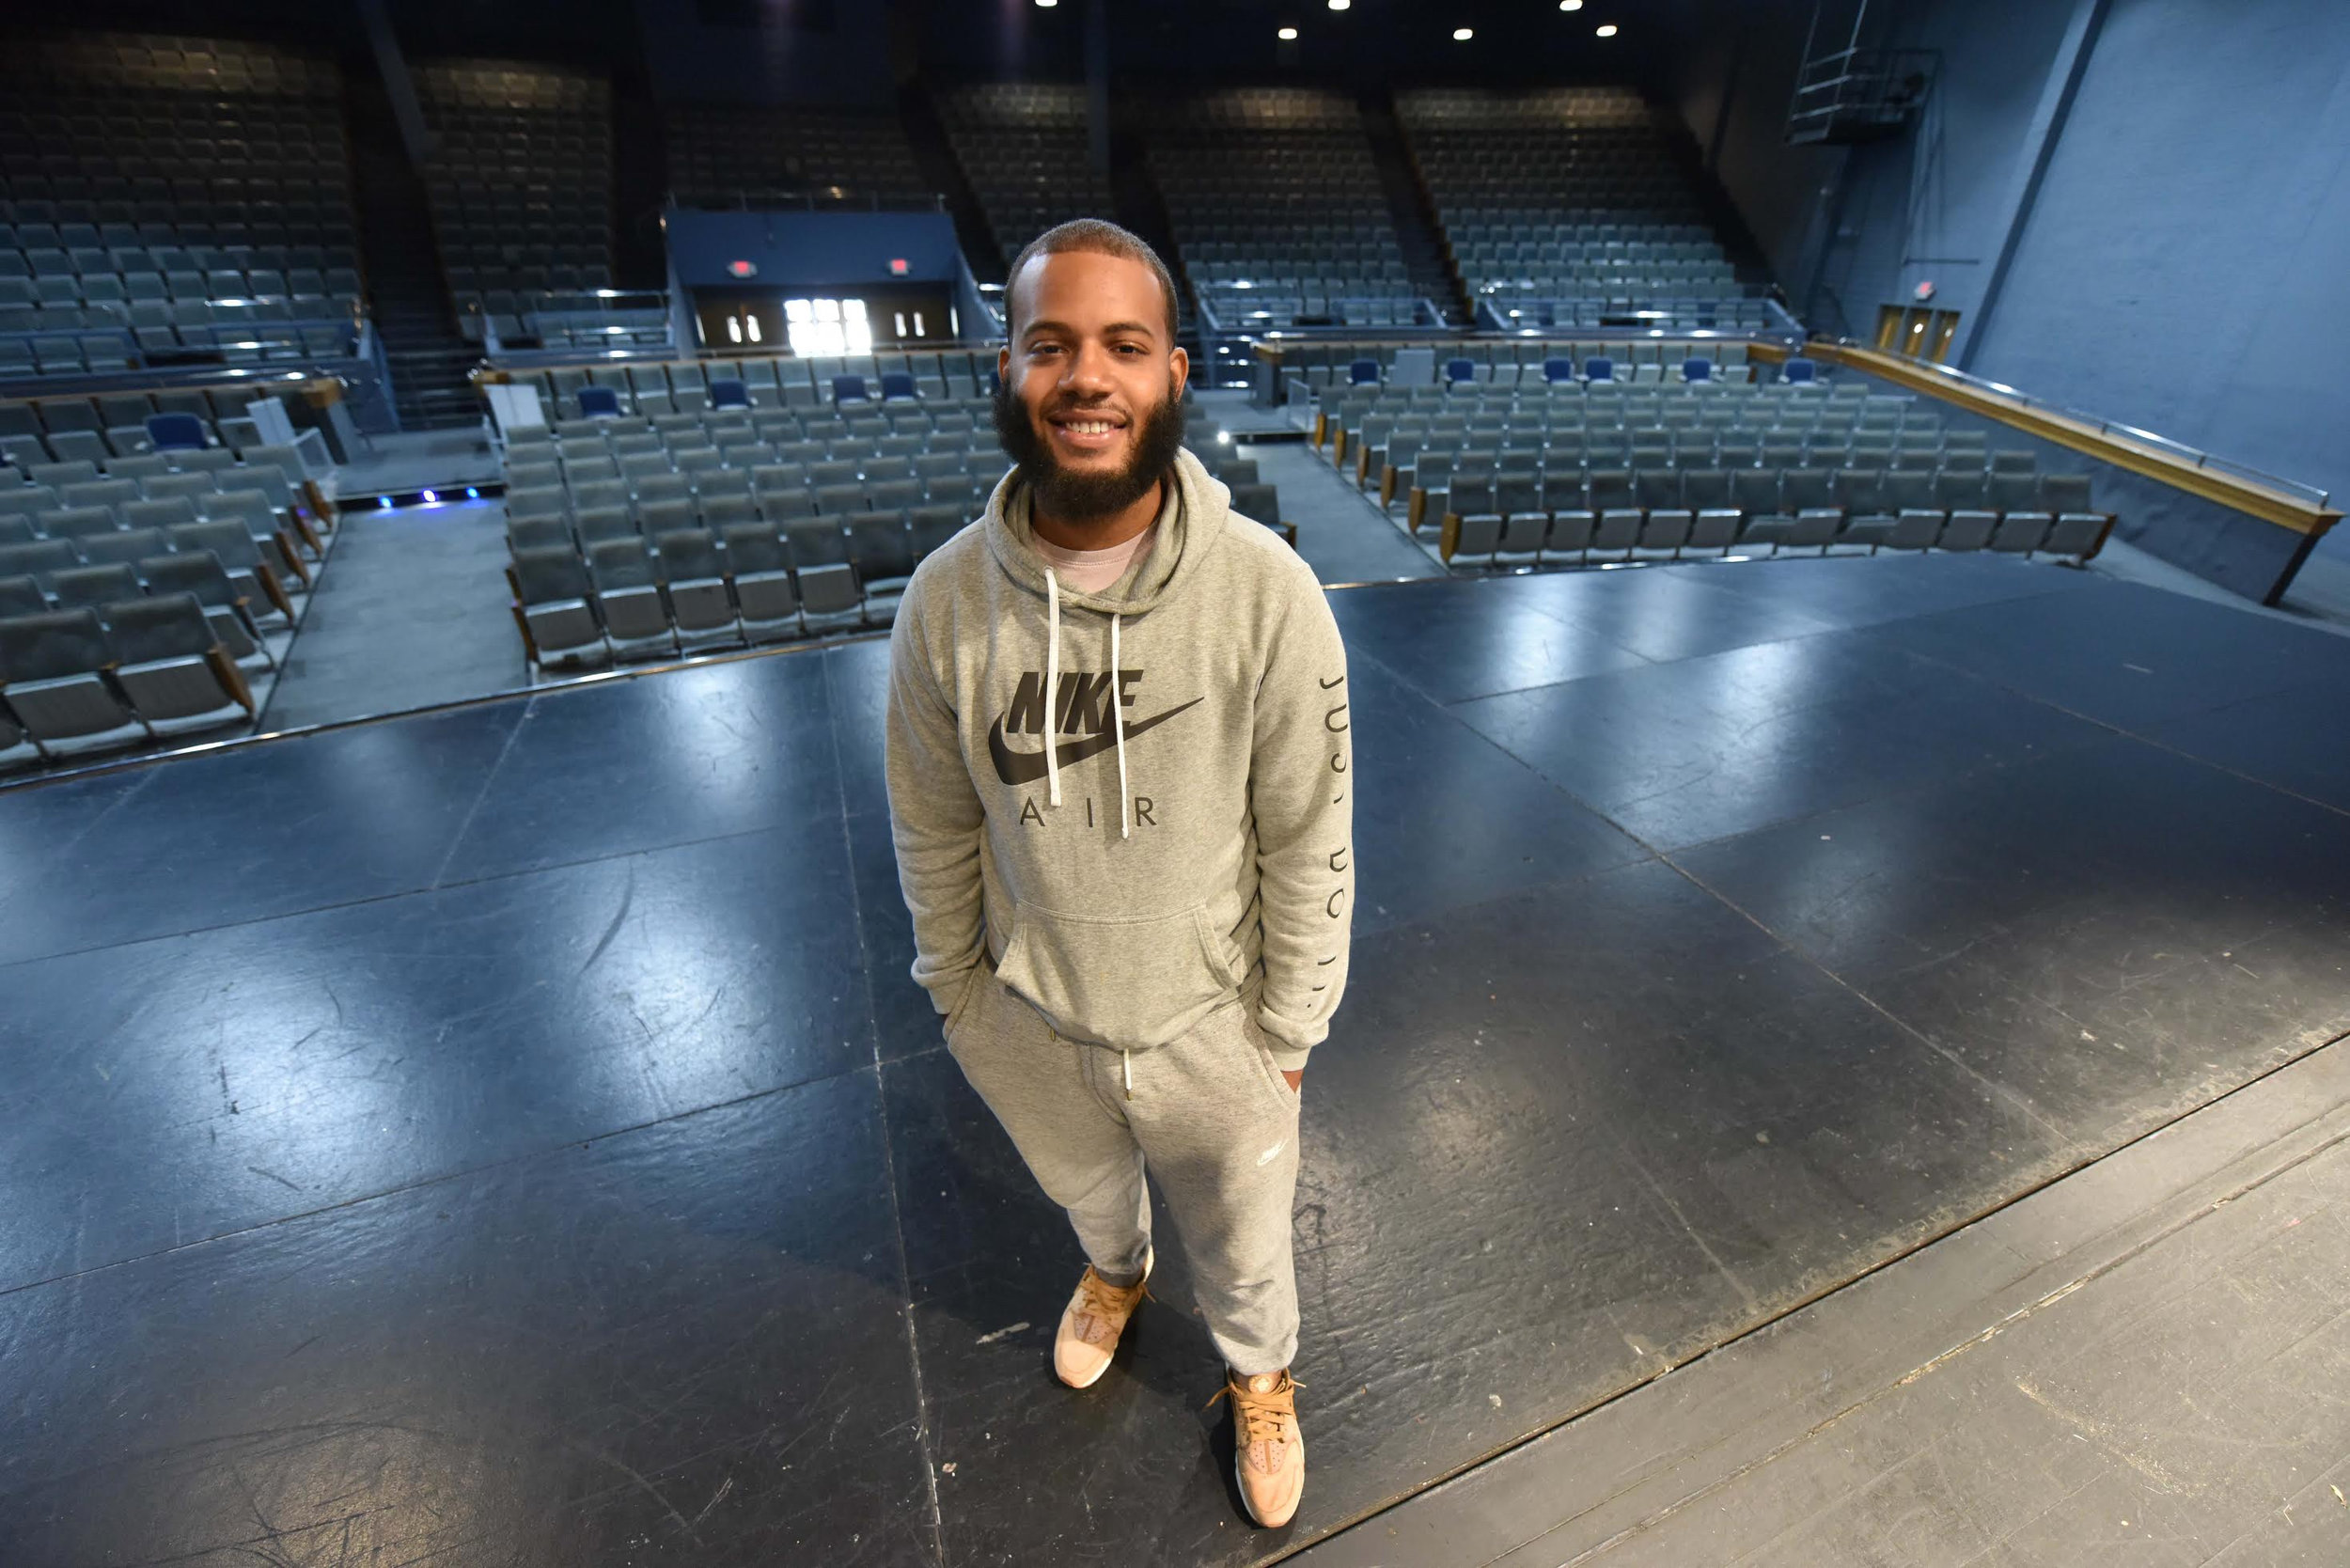 Student Michael Taylor is determined to change the negative stereotypes and narratives surrounding black men.   Sarah Warnock/Clarion Ledger